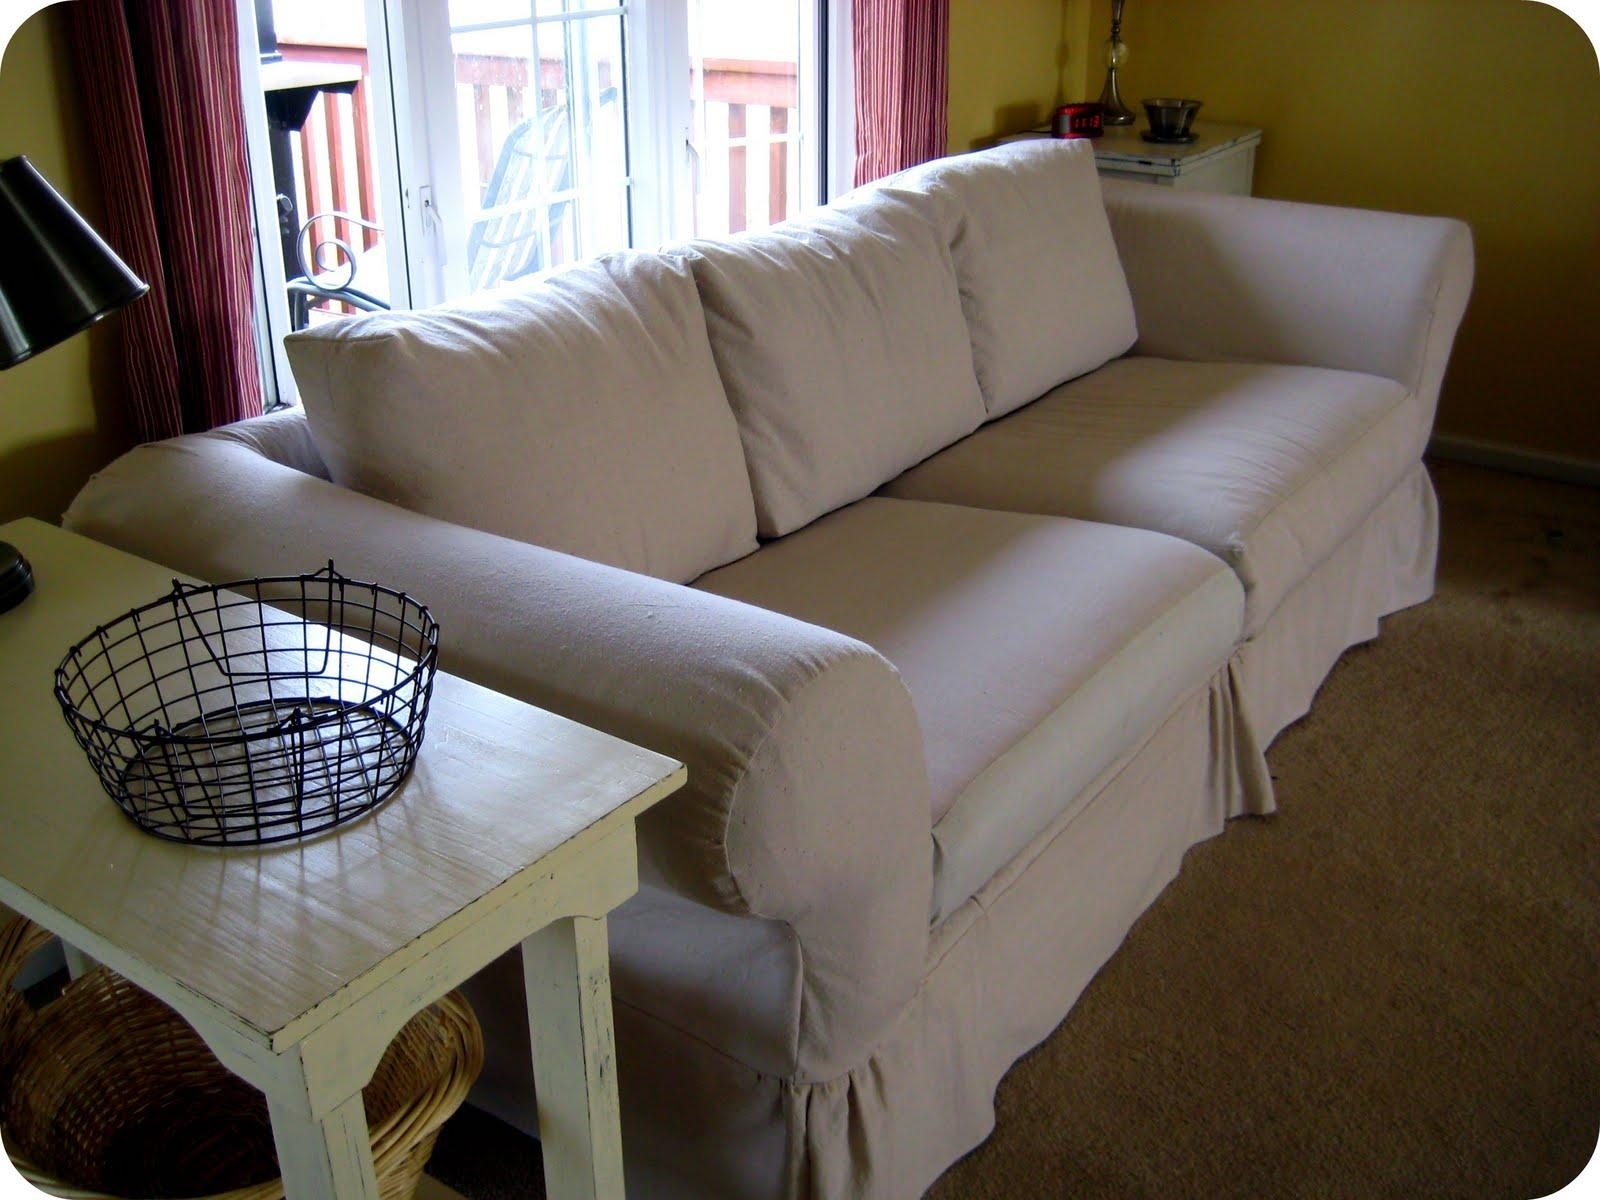 Canvas Sofa Slipcovers | Sofa Gallery | Kengire In Canvas Sofa Slipcovers (Image 2 of 20)